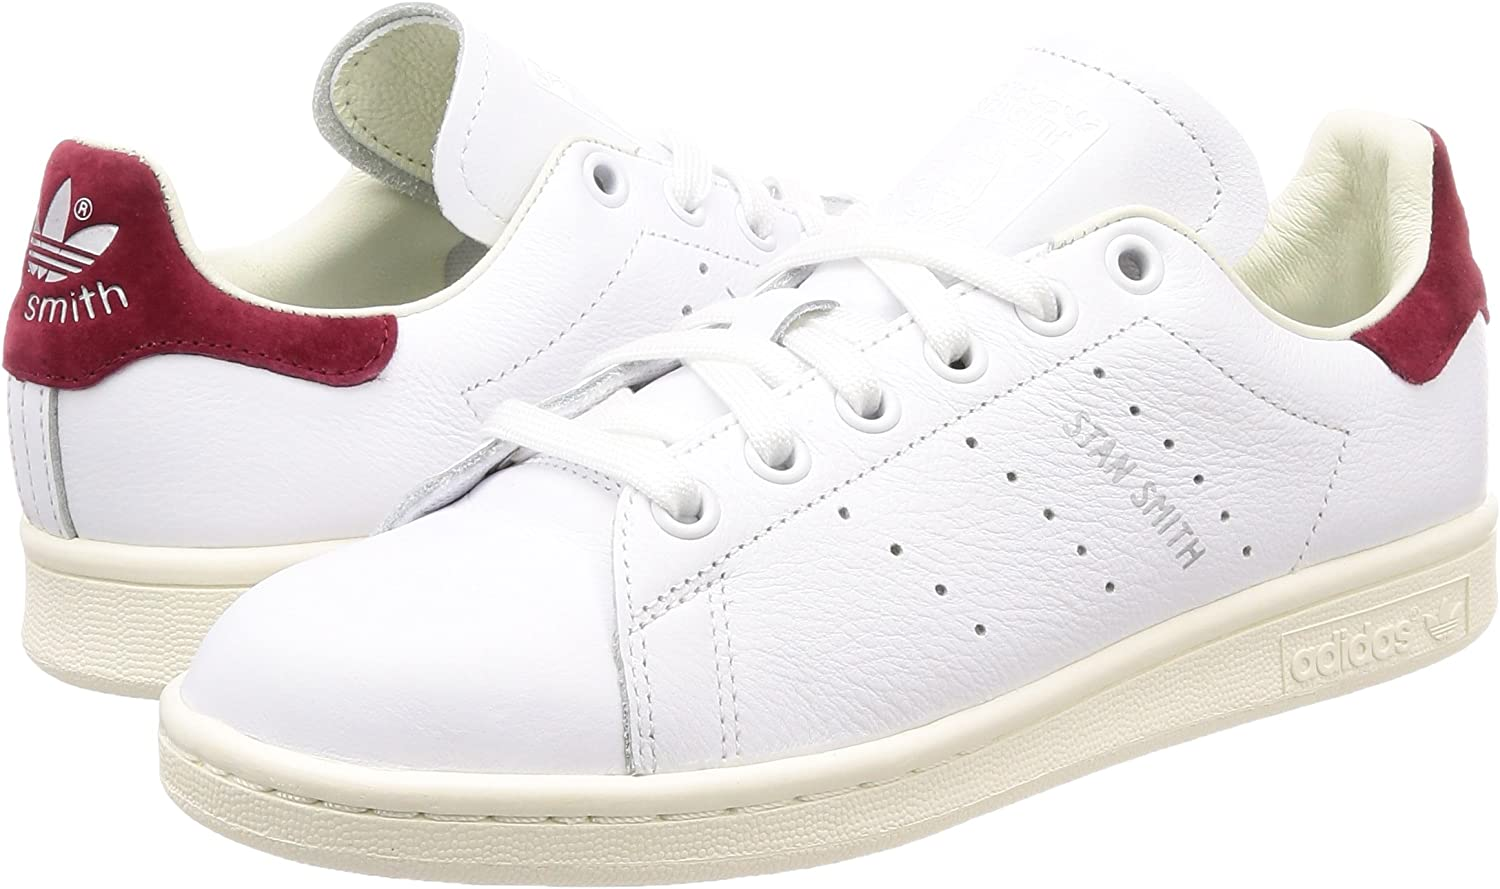 adidas Originals Stan Smith, Baskets Basses Femme